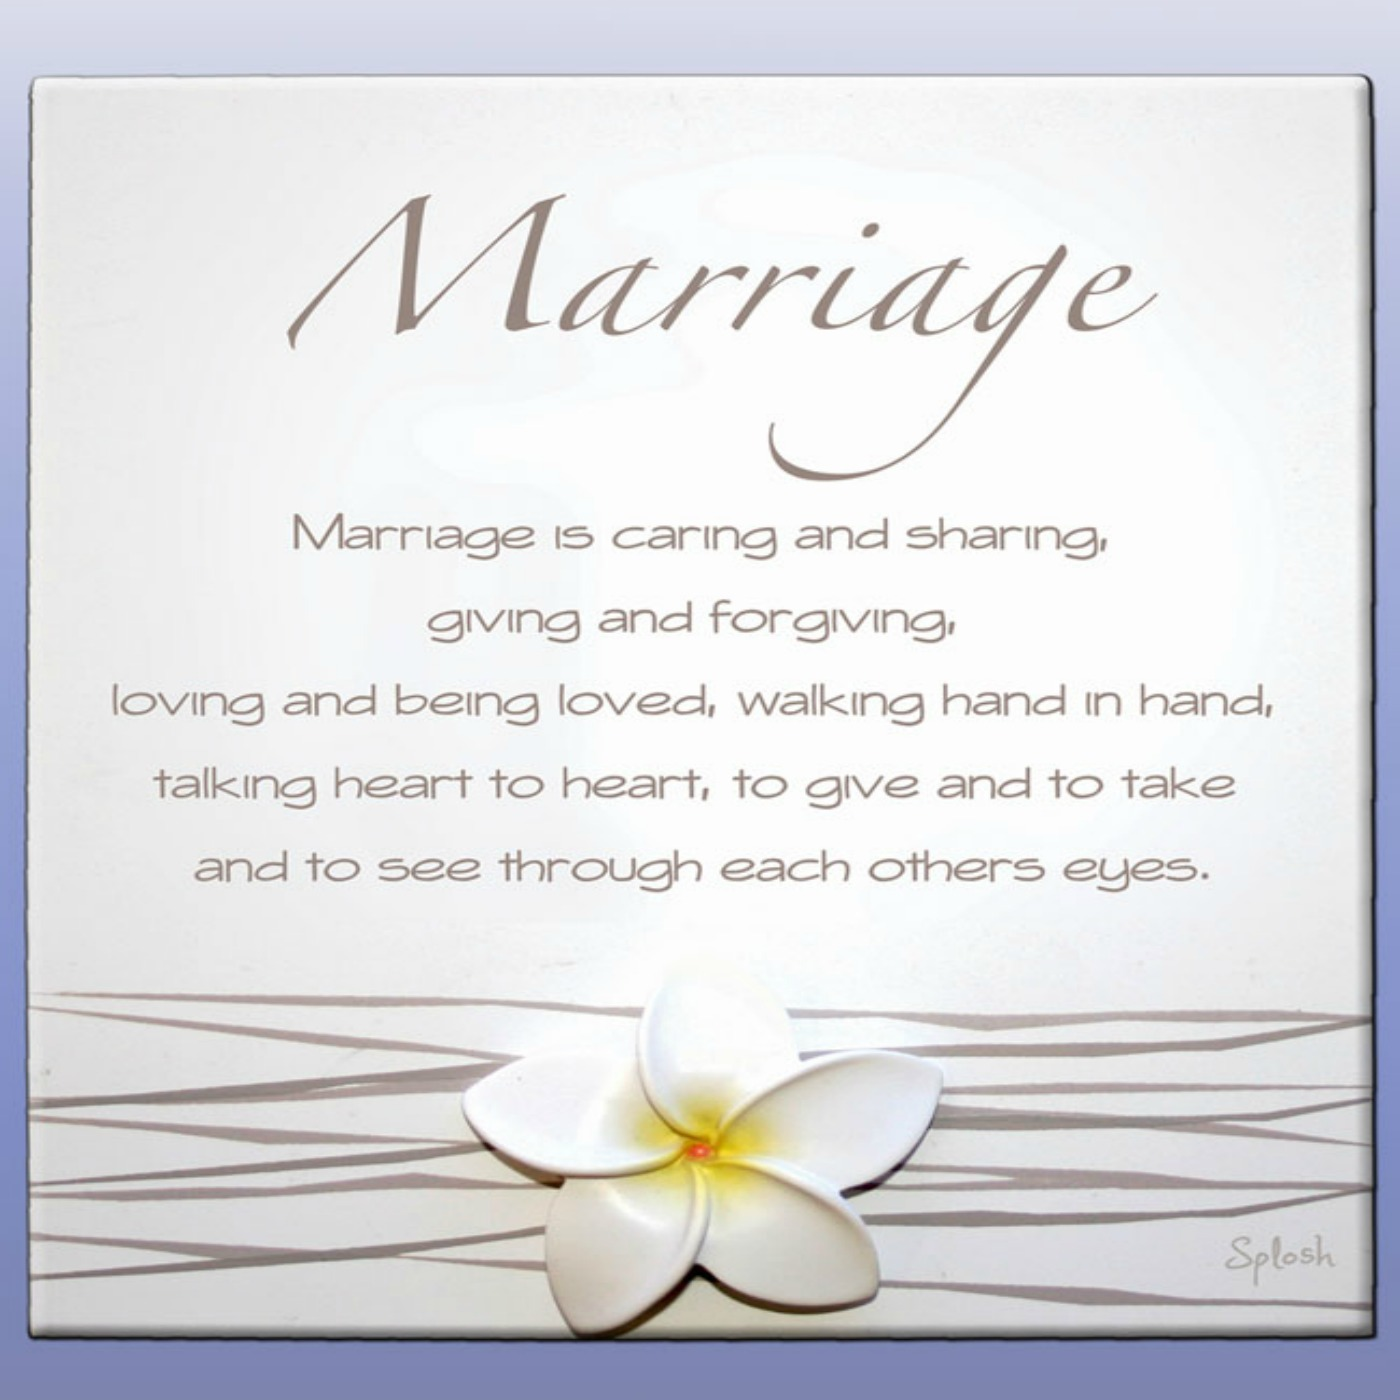 Marriage Is Caring And Sharing Giving And Forgiving